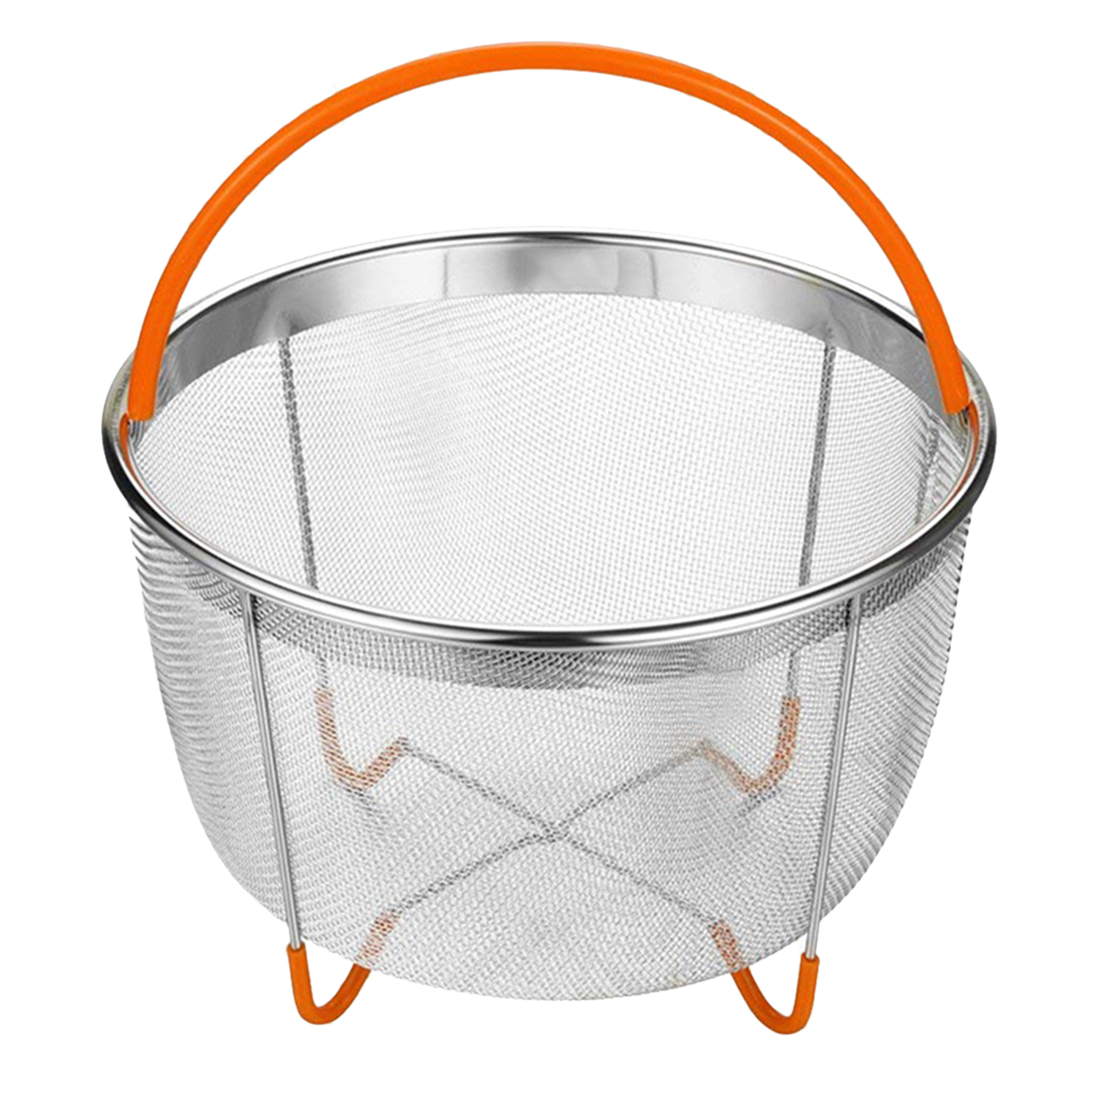 Factory Recommend 1 Pcs 6 Quart Instant Steam Basket Stainless Steel Steam Pot Steam Rice Cooker Mesh Basket - Orange